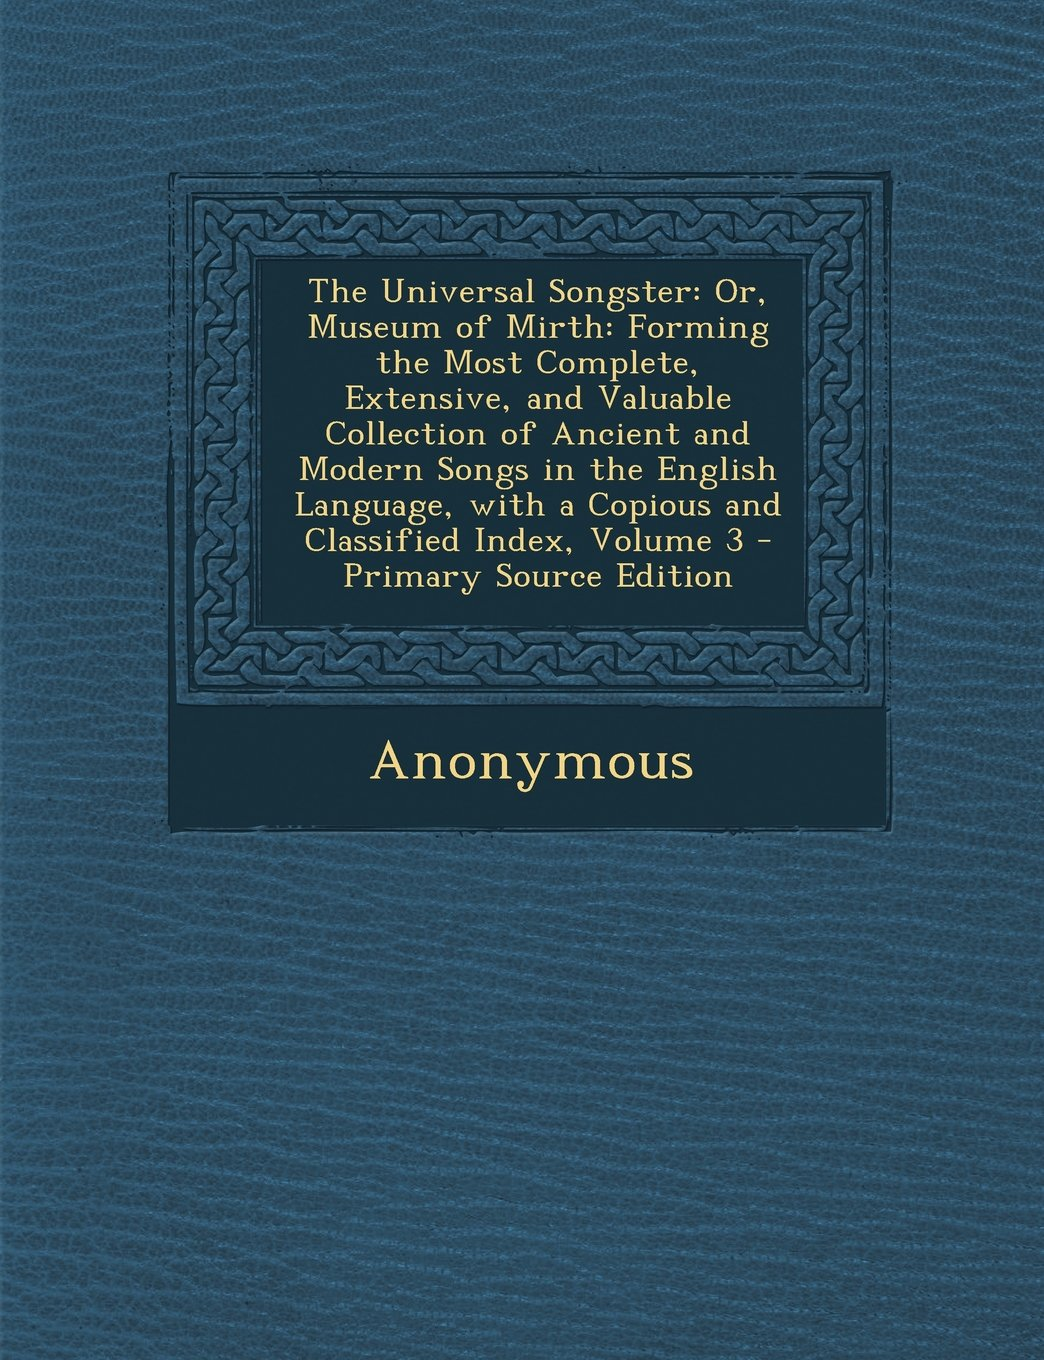 The Universal Songster: Or, Museum of Mirth: Forming the Most Complete, Extensive, and Valuable Collection of Ancient and Modern Songs in the English ... with a Copious and Classified Index, Volume 3 pdf